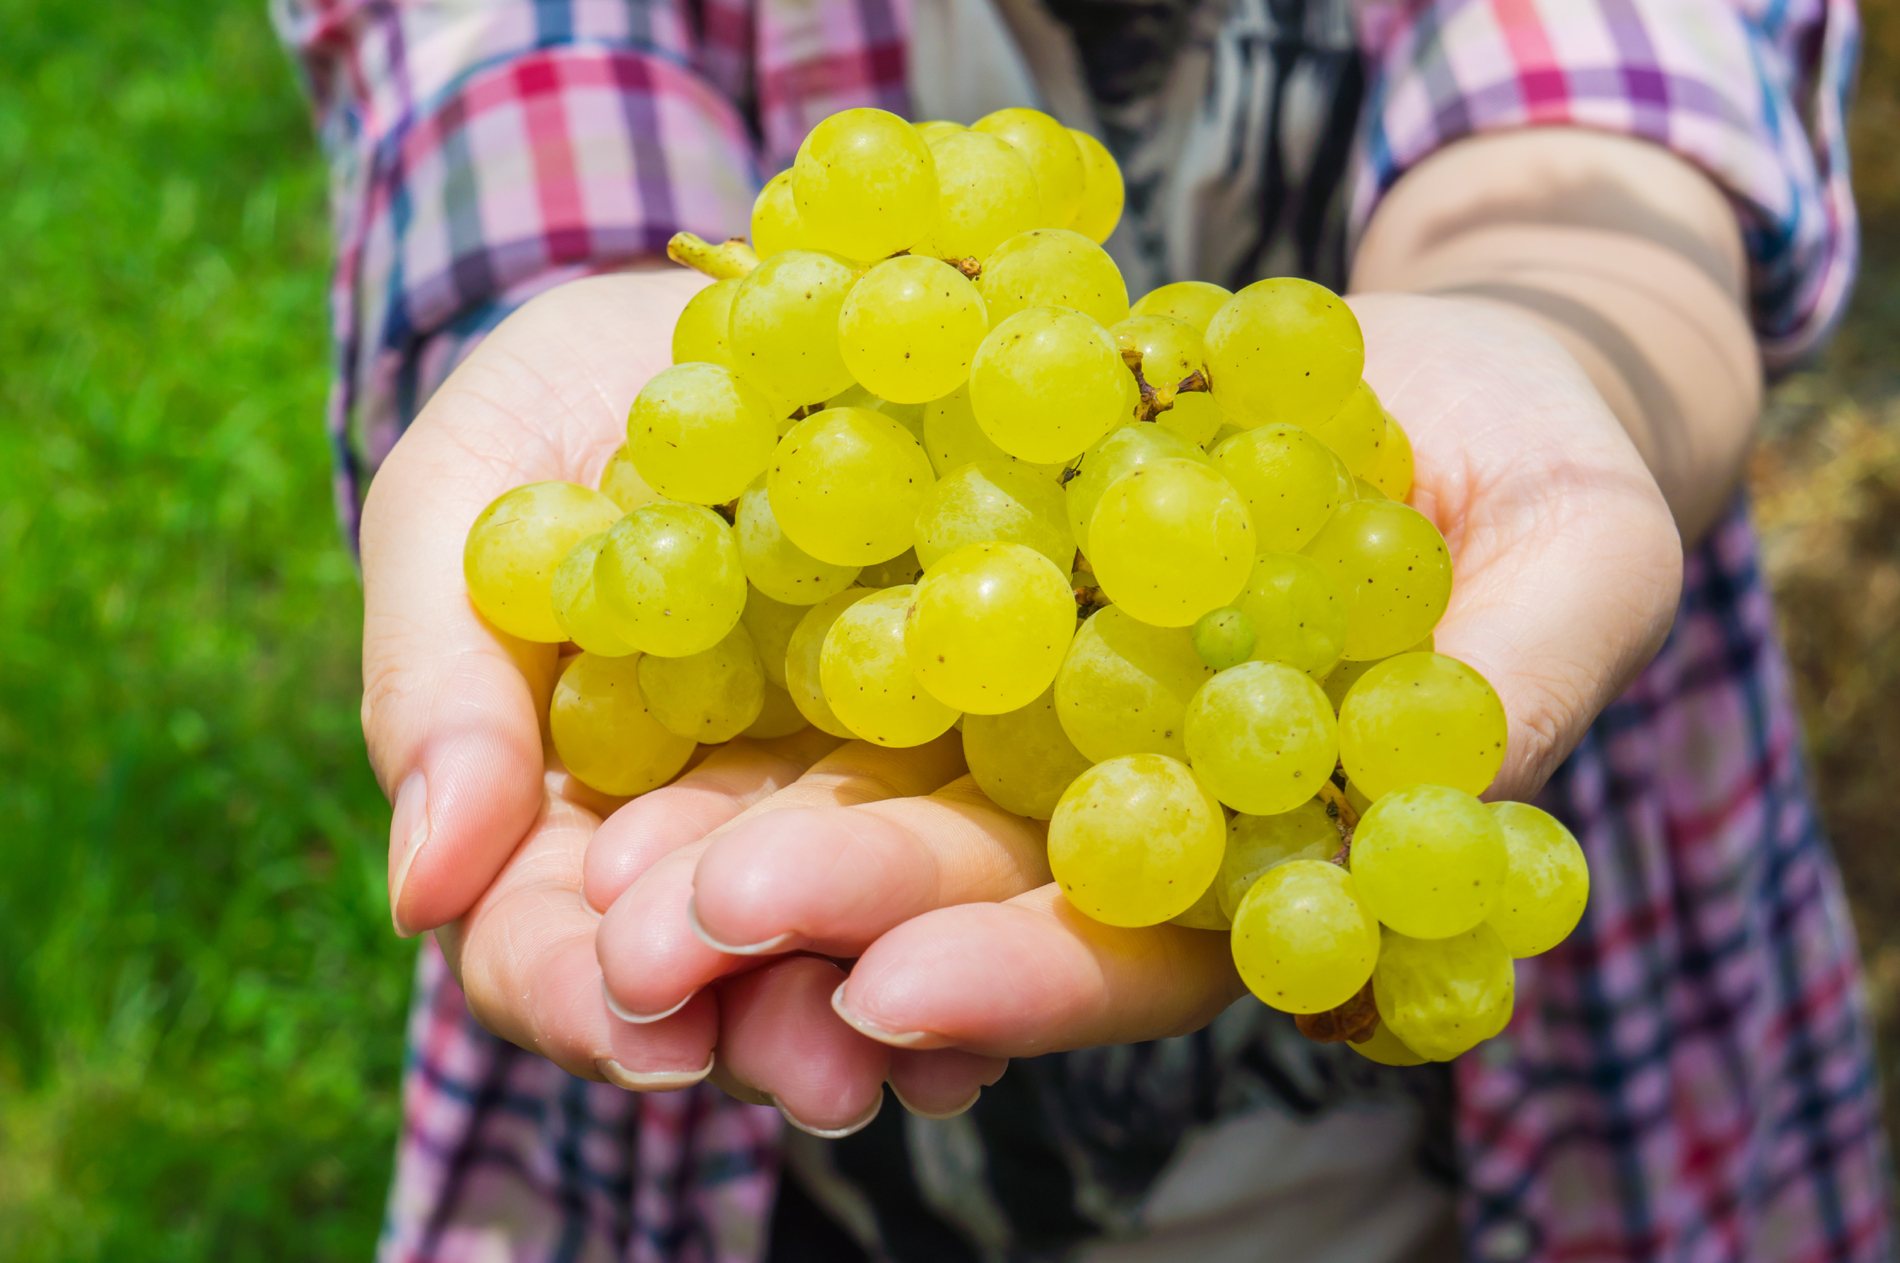 Holding hands in fresh grapes 52578